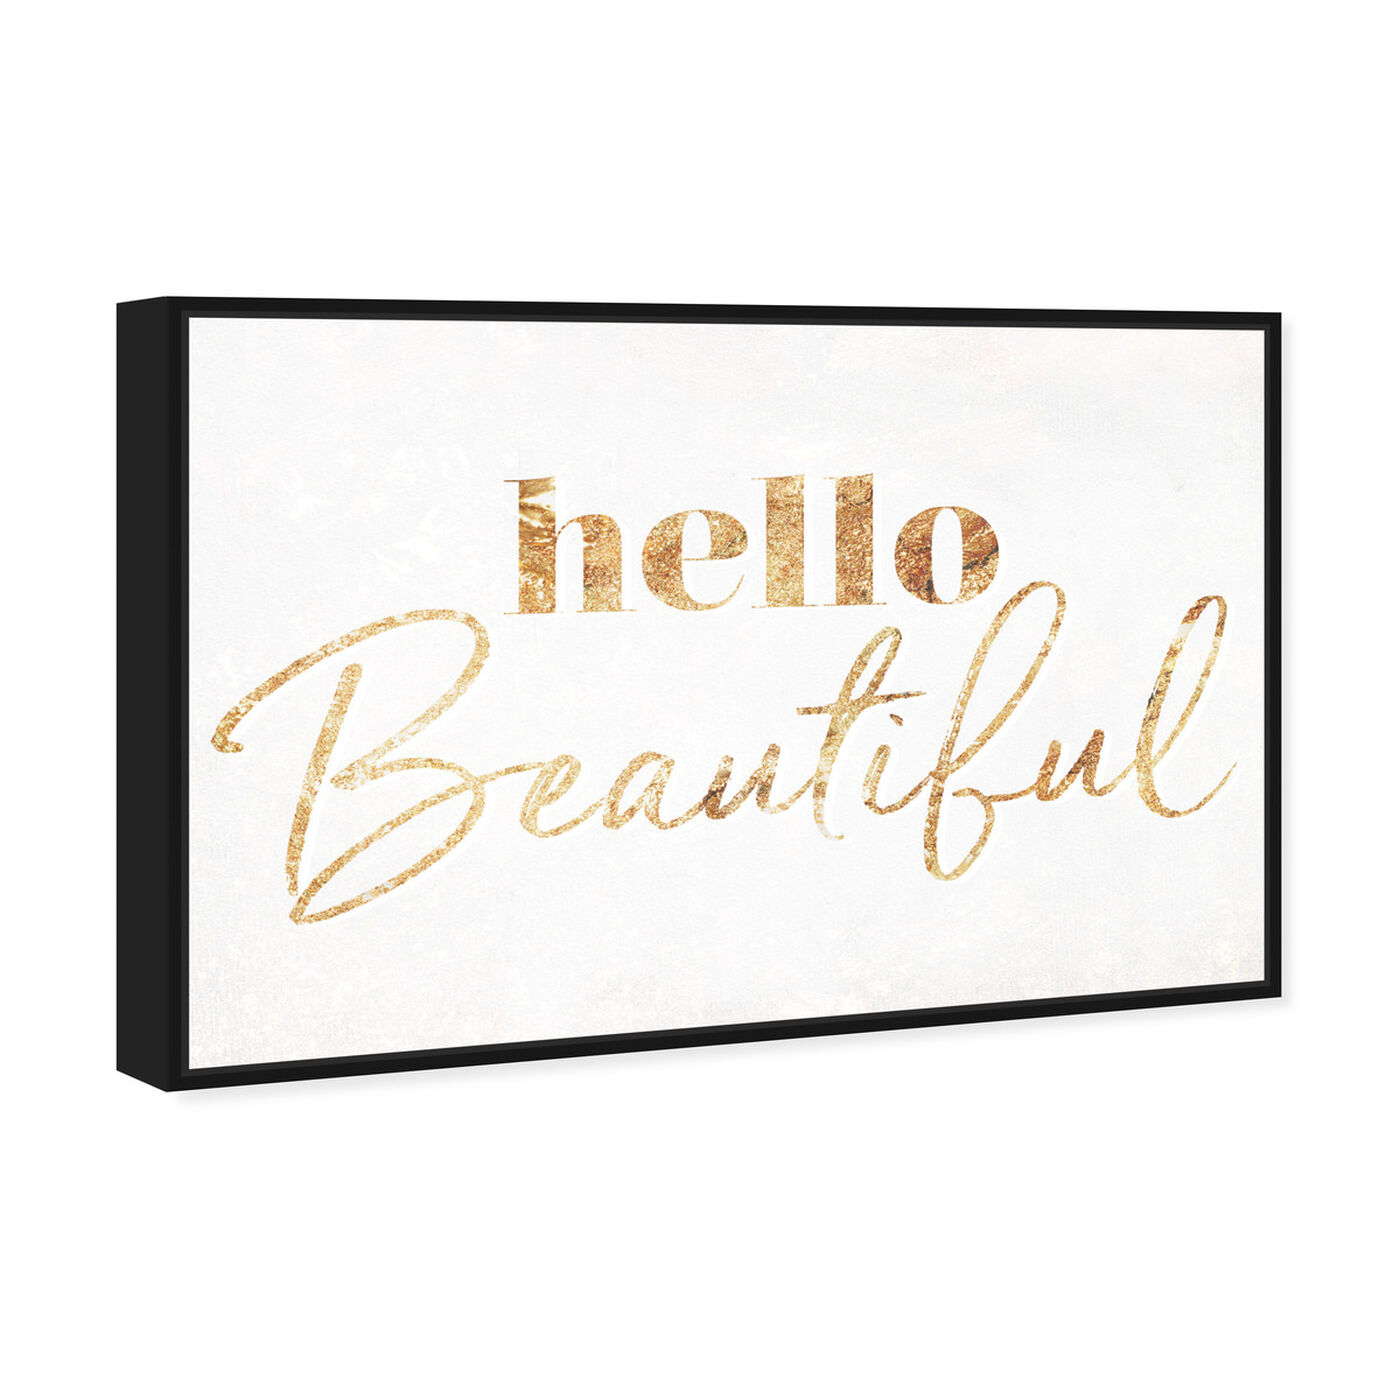 Angled view of Hello Beautiful Gold Vertical featuring typography and quotes and beauty quotes and sayings art.